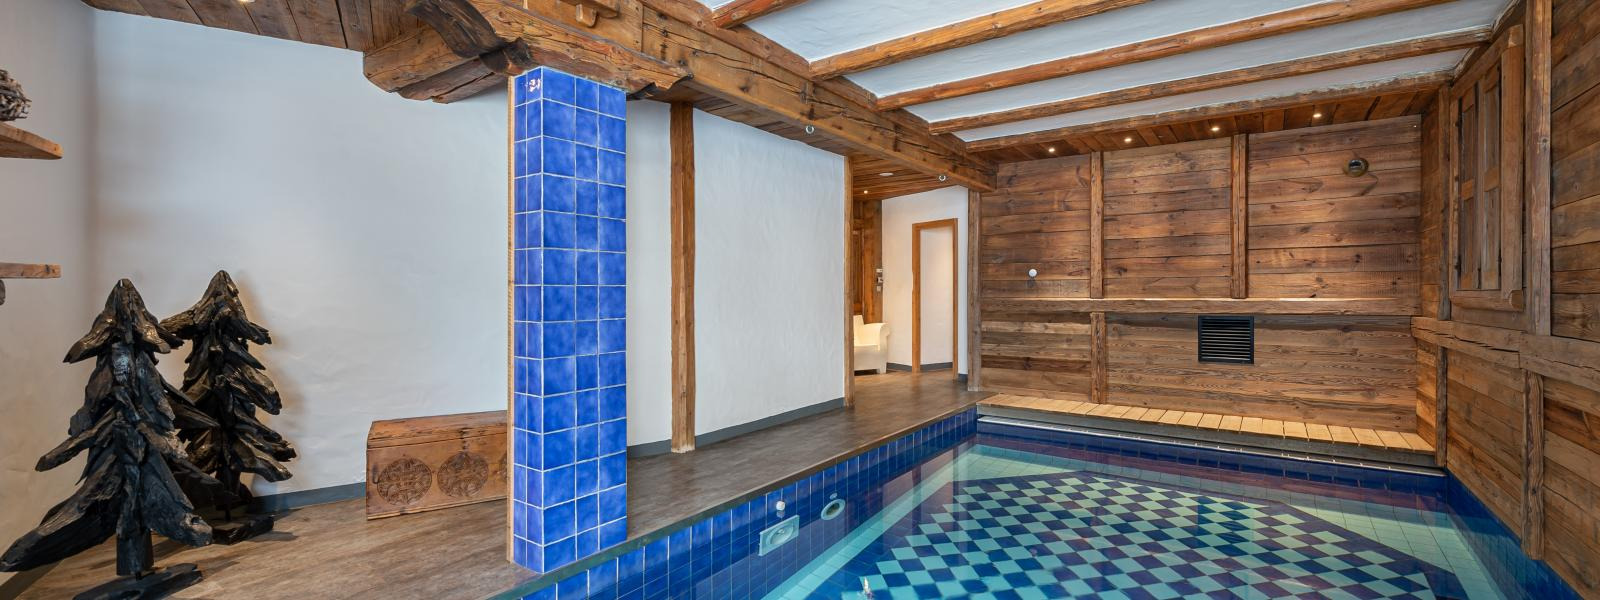 Chalet Pauline 3 - Location chalets Covarel - Val d'Isère Alpes - France - Piscine bis